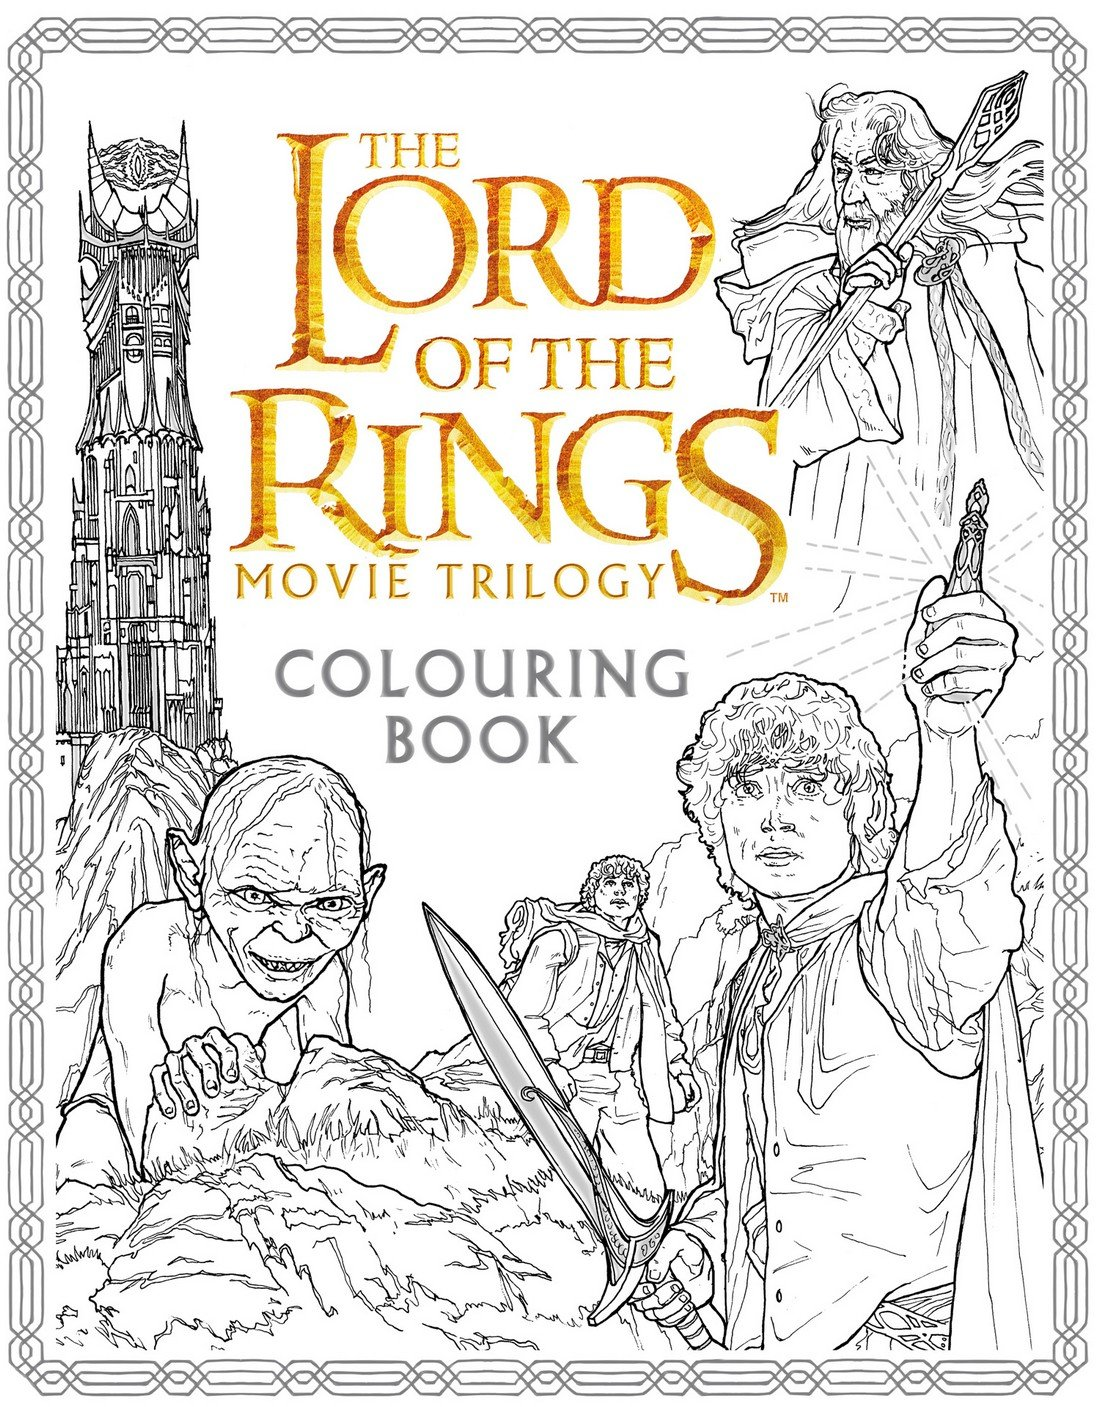 the lord of the rings movie trilogy colouring book amazon co uk